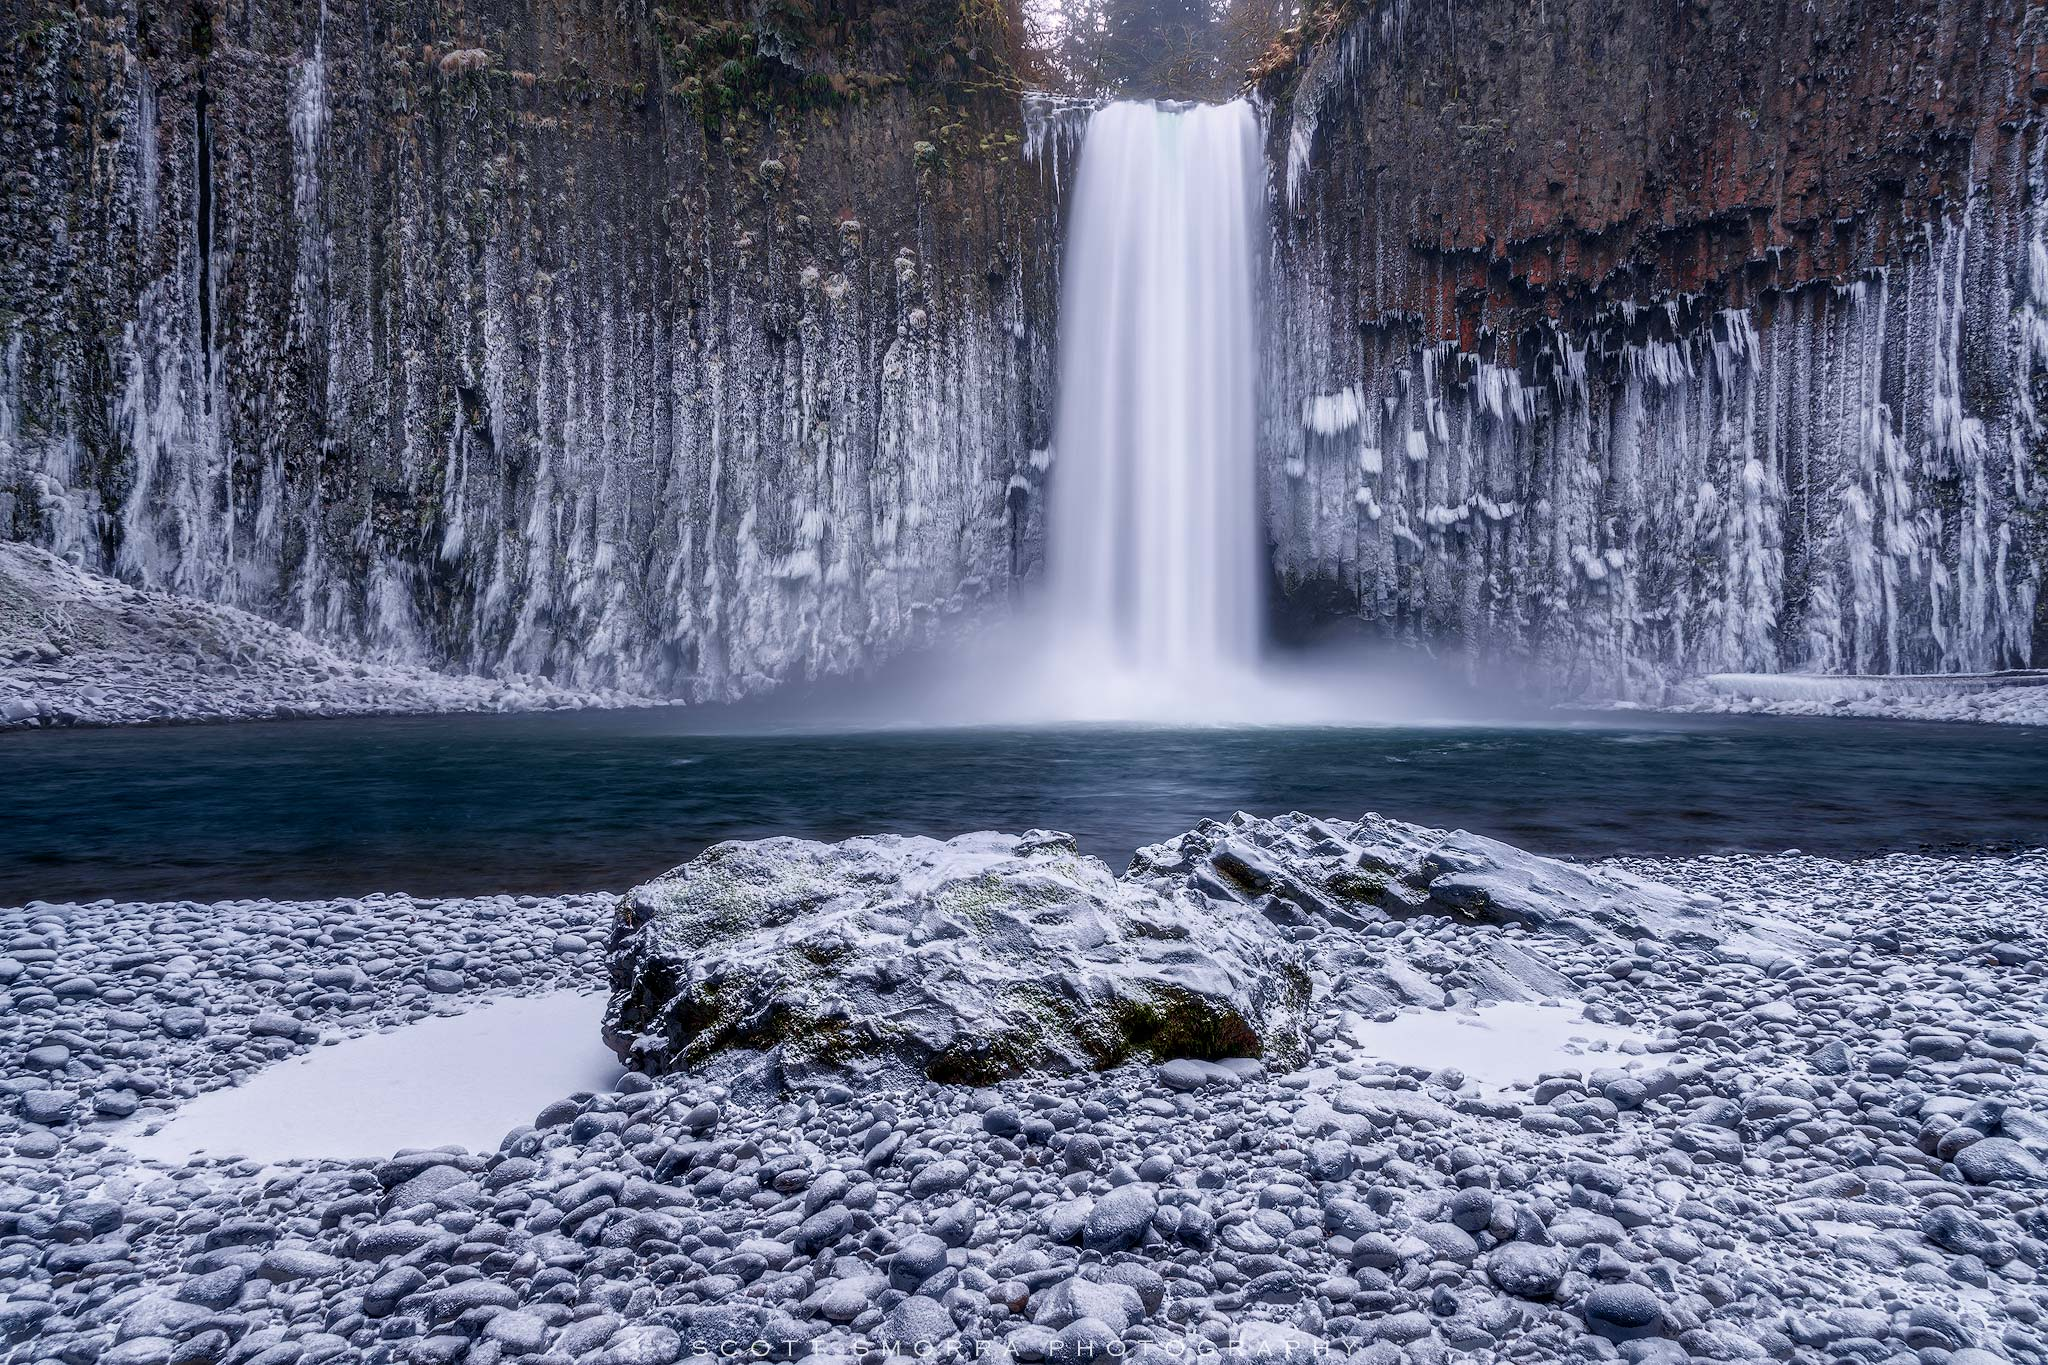 Fine Art Limited Edition of 100 - Abiqua Falls, Oregon surrounded by icicles, snow and frozen spray in winter. In early December...